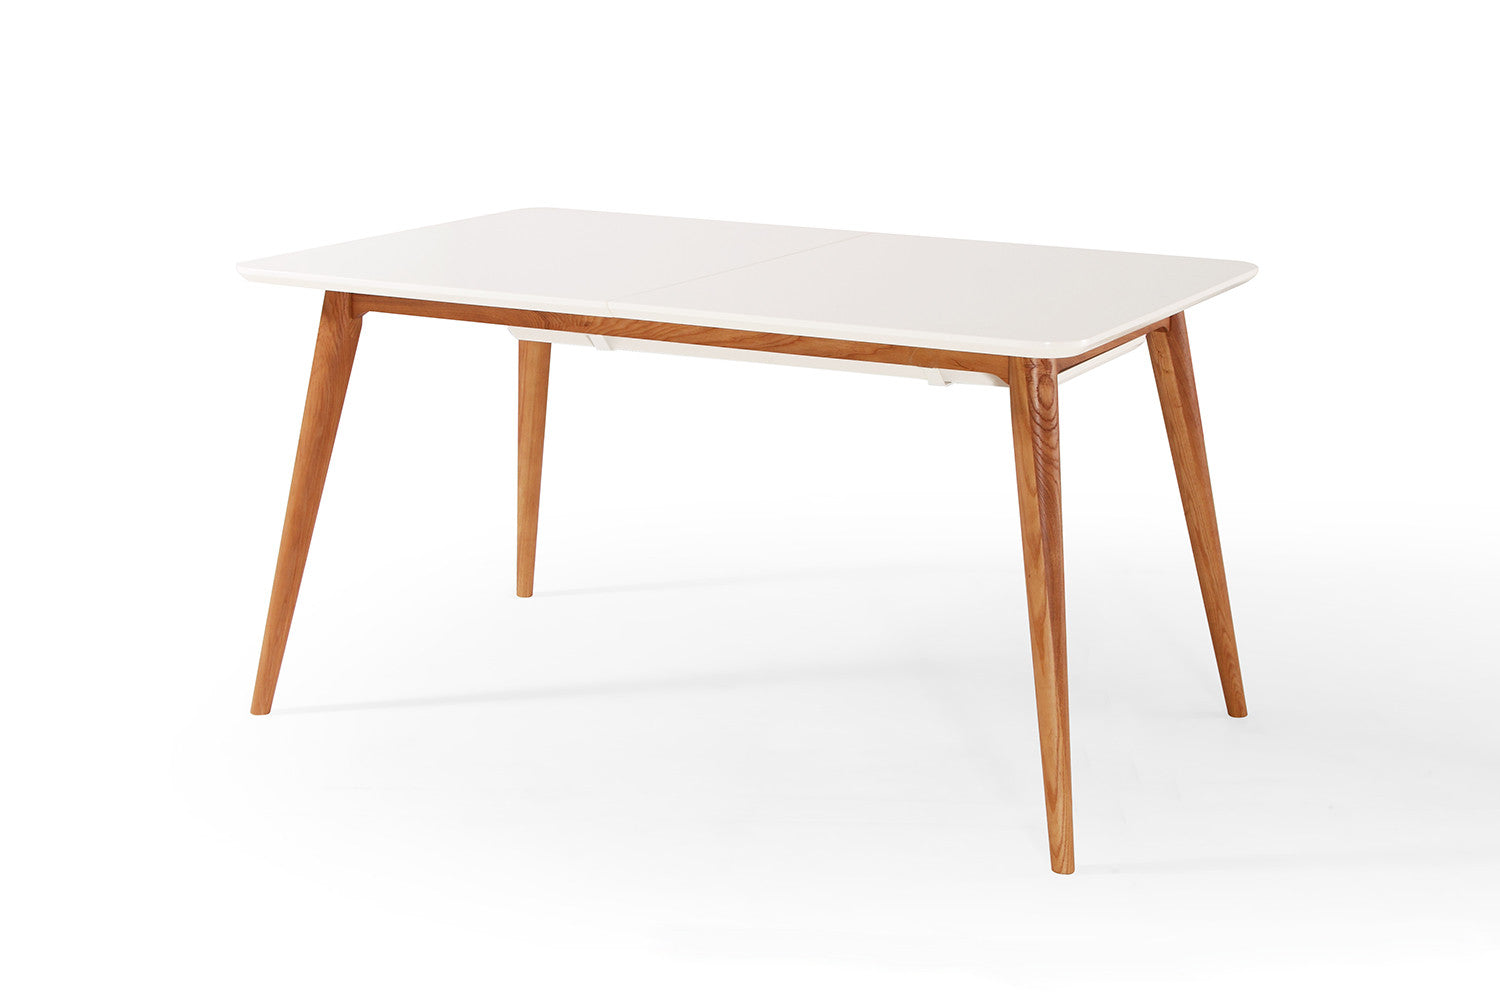 Table de salle manger extensible scandinave wyna dewarens for Table de salle manger extensible